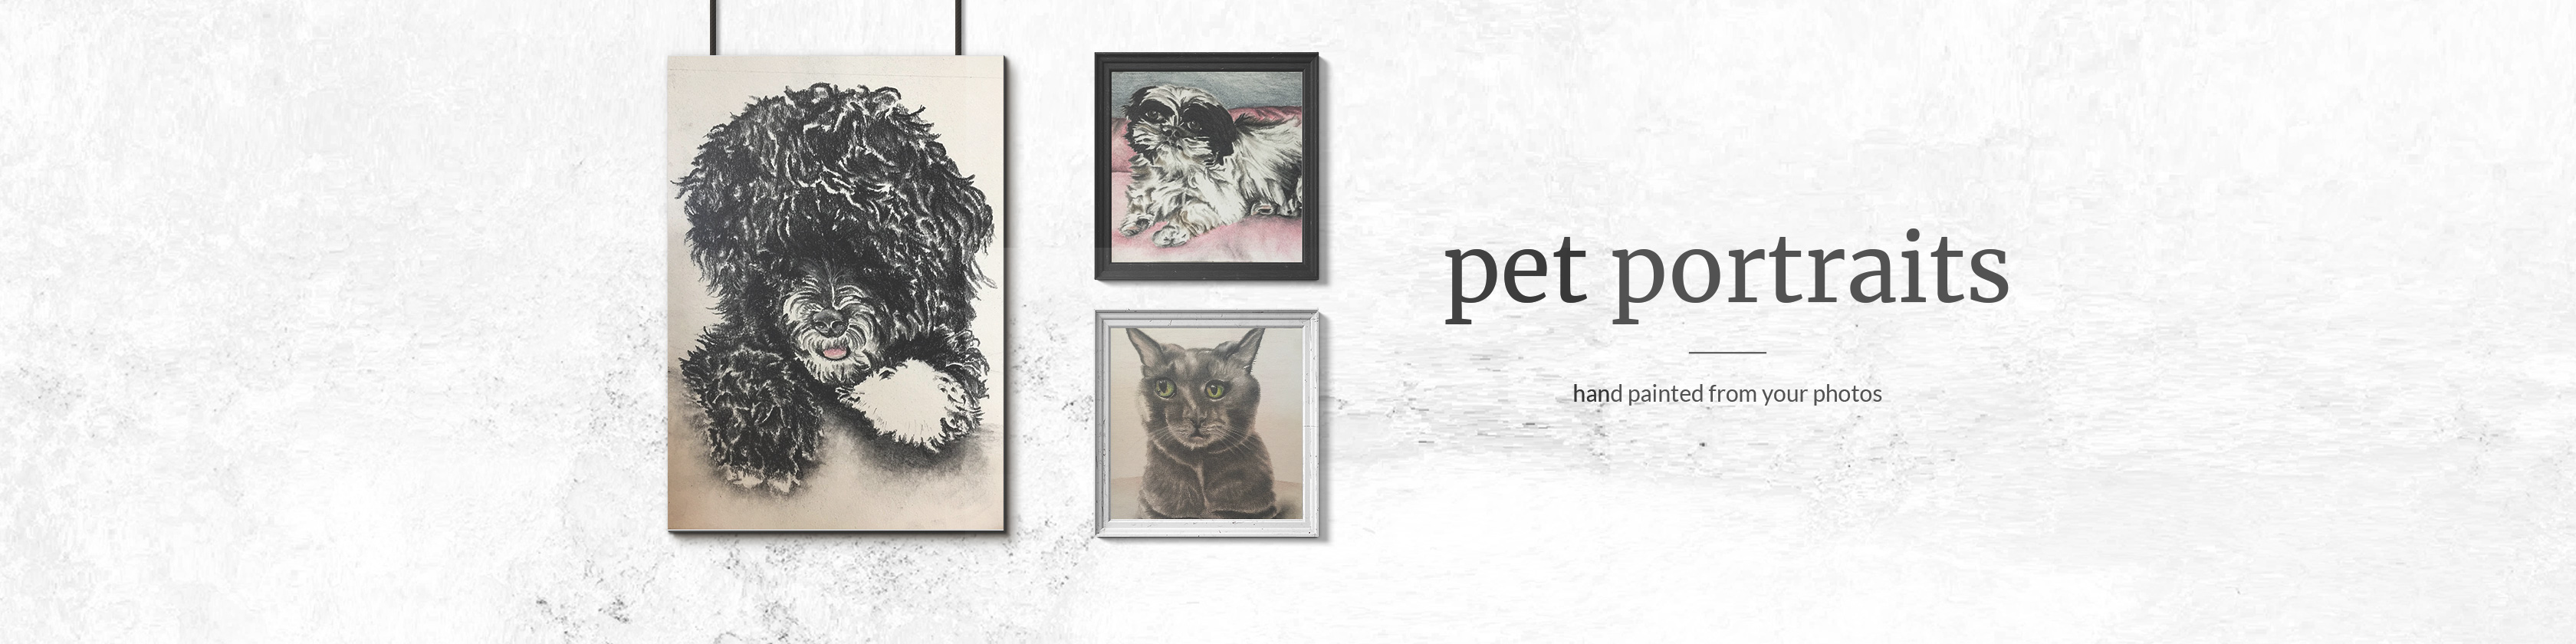 InkandByte-websiteHero-petPortraits